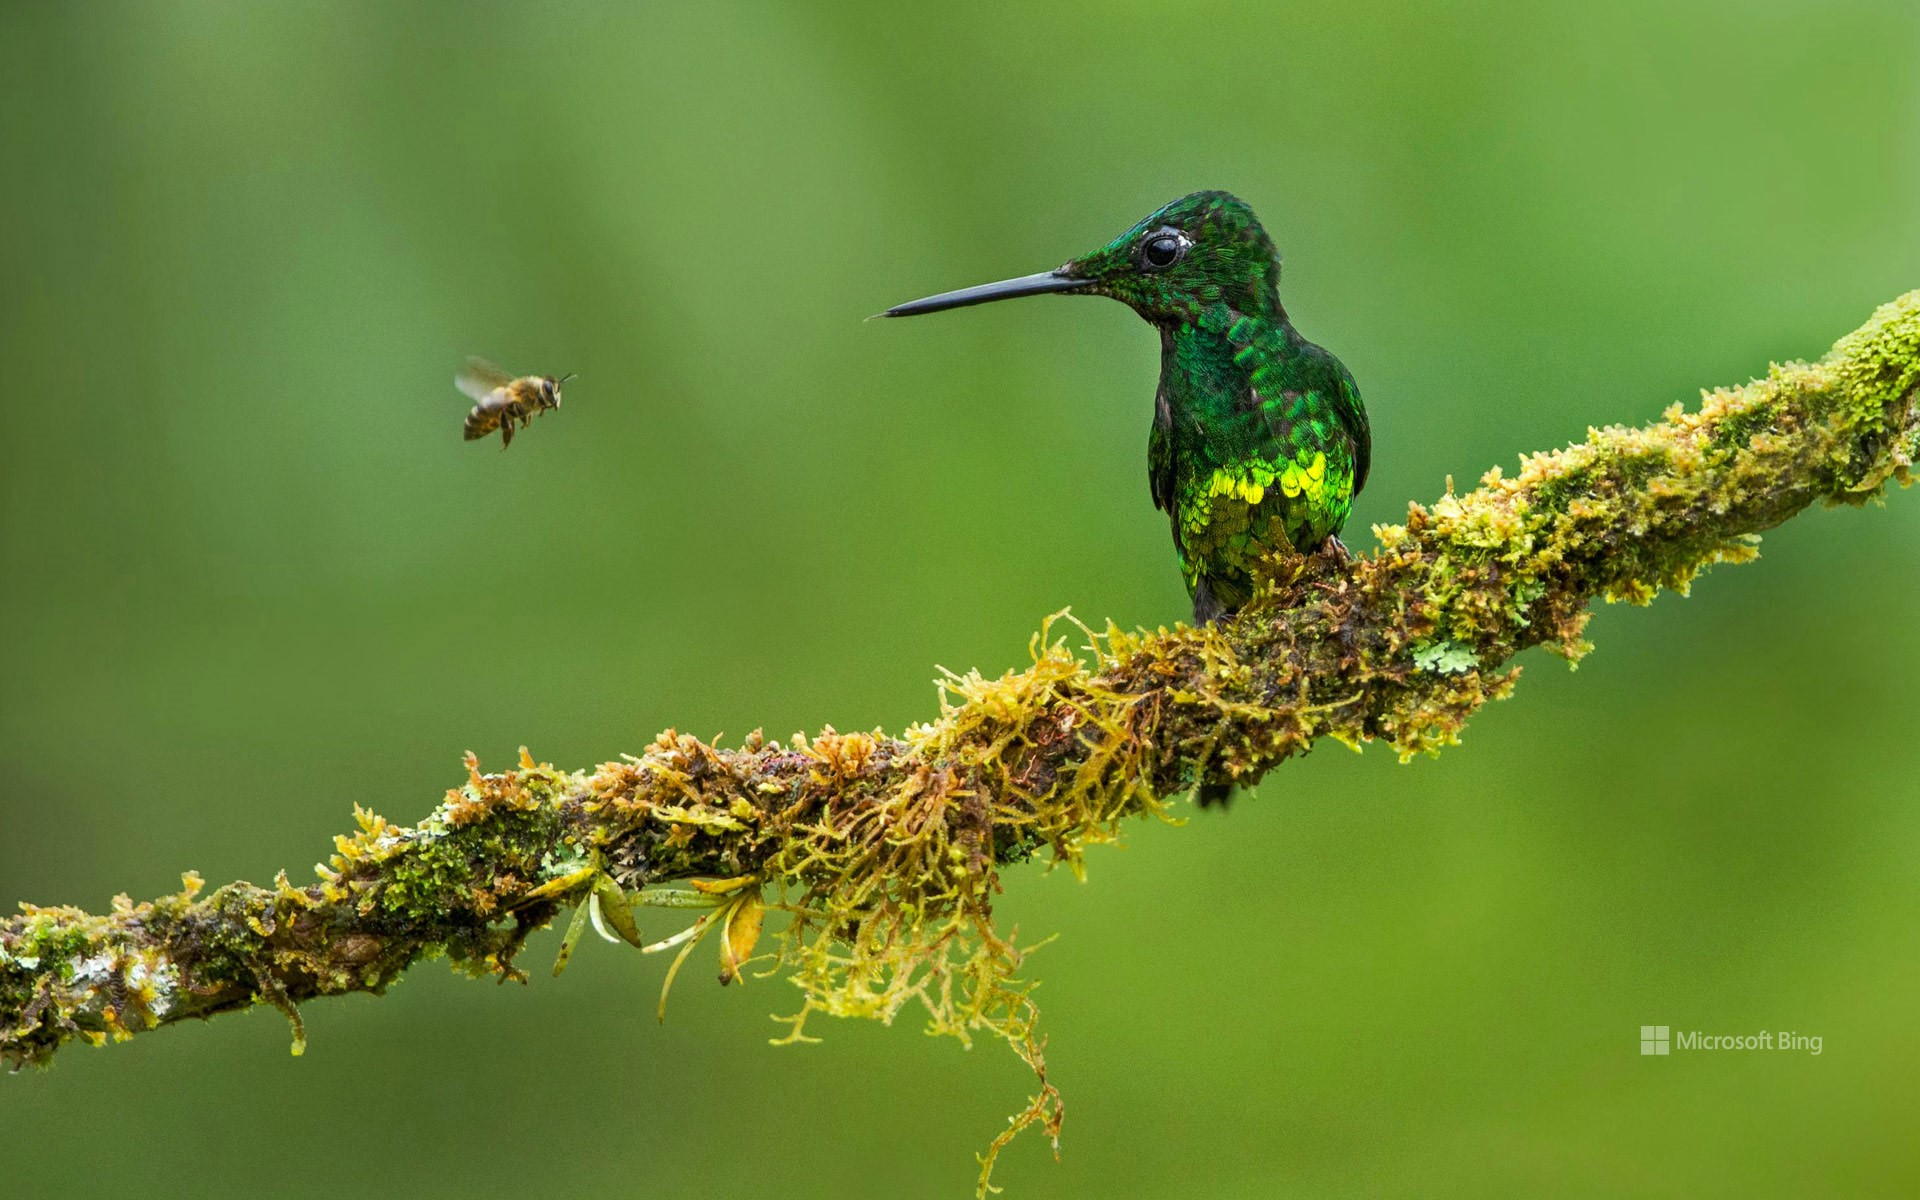 Empress brilliant hummingbird and a bee in Colombia